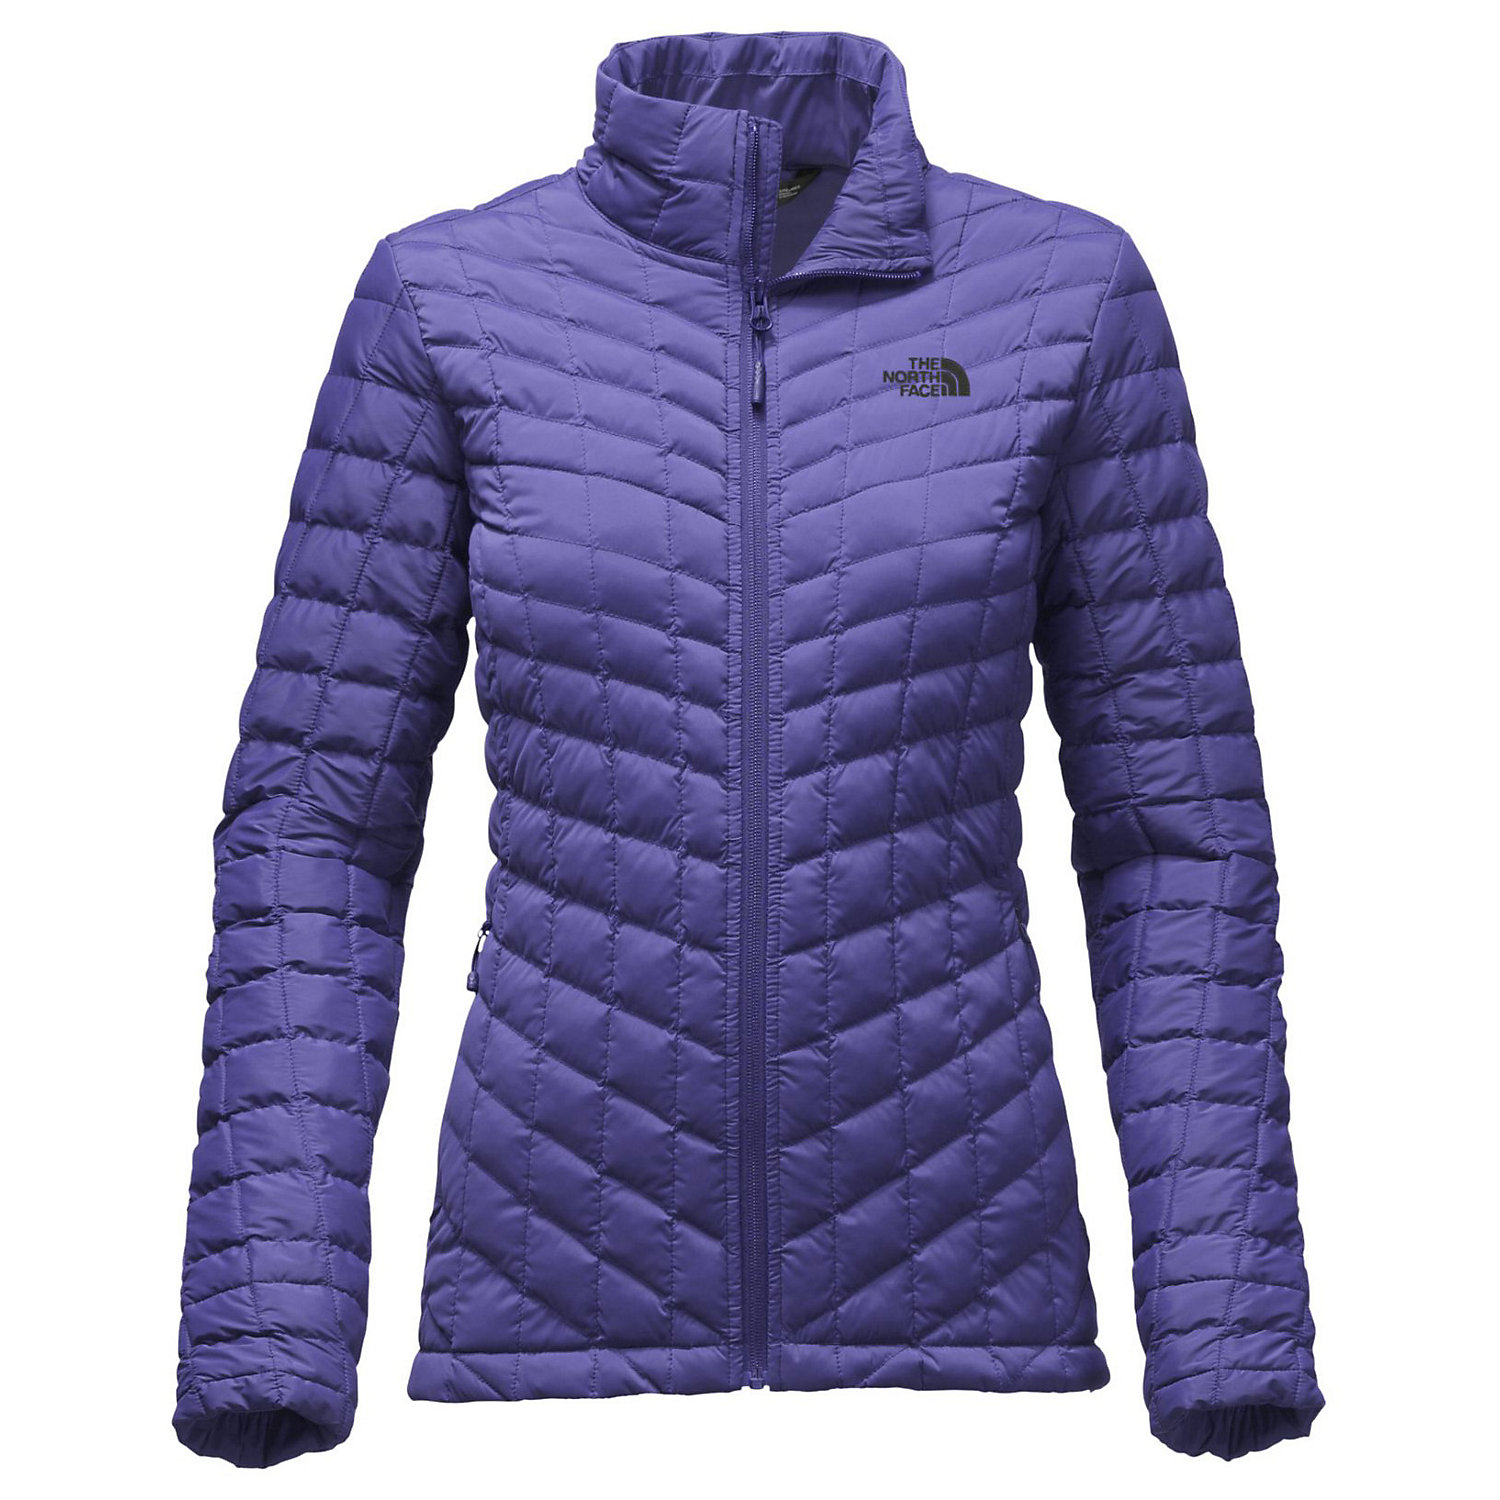 dd99e64c88 The North Face Women s Stretch Thermoball Jacket - Moosejaw